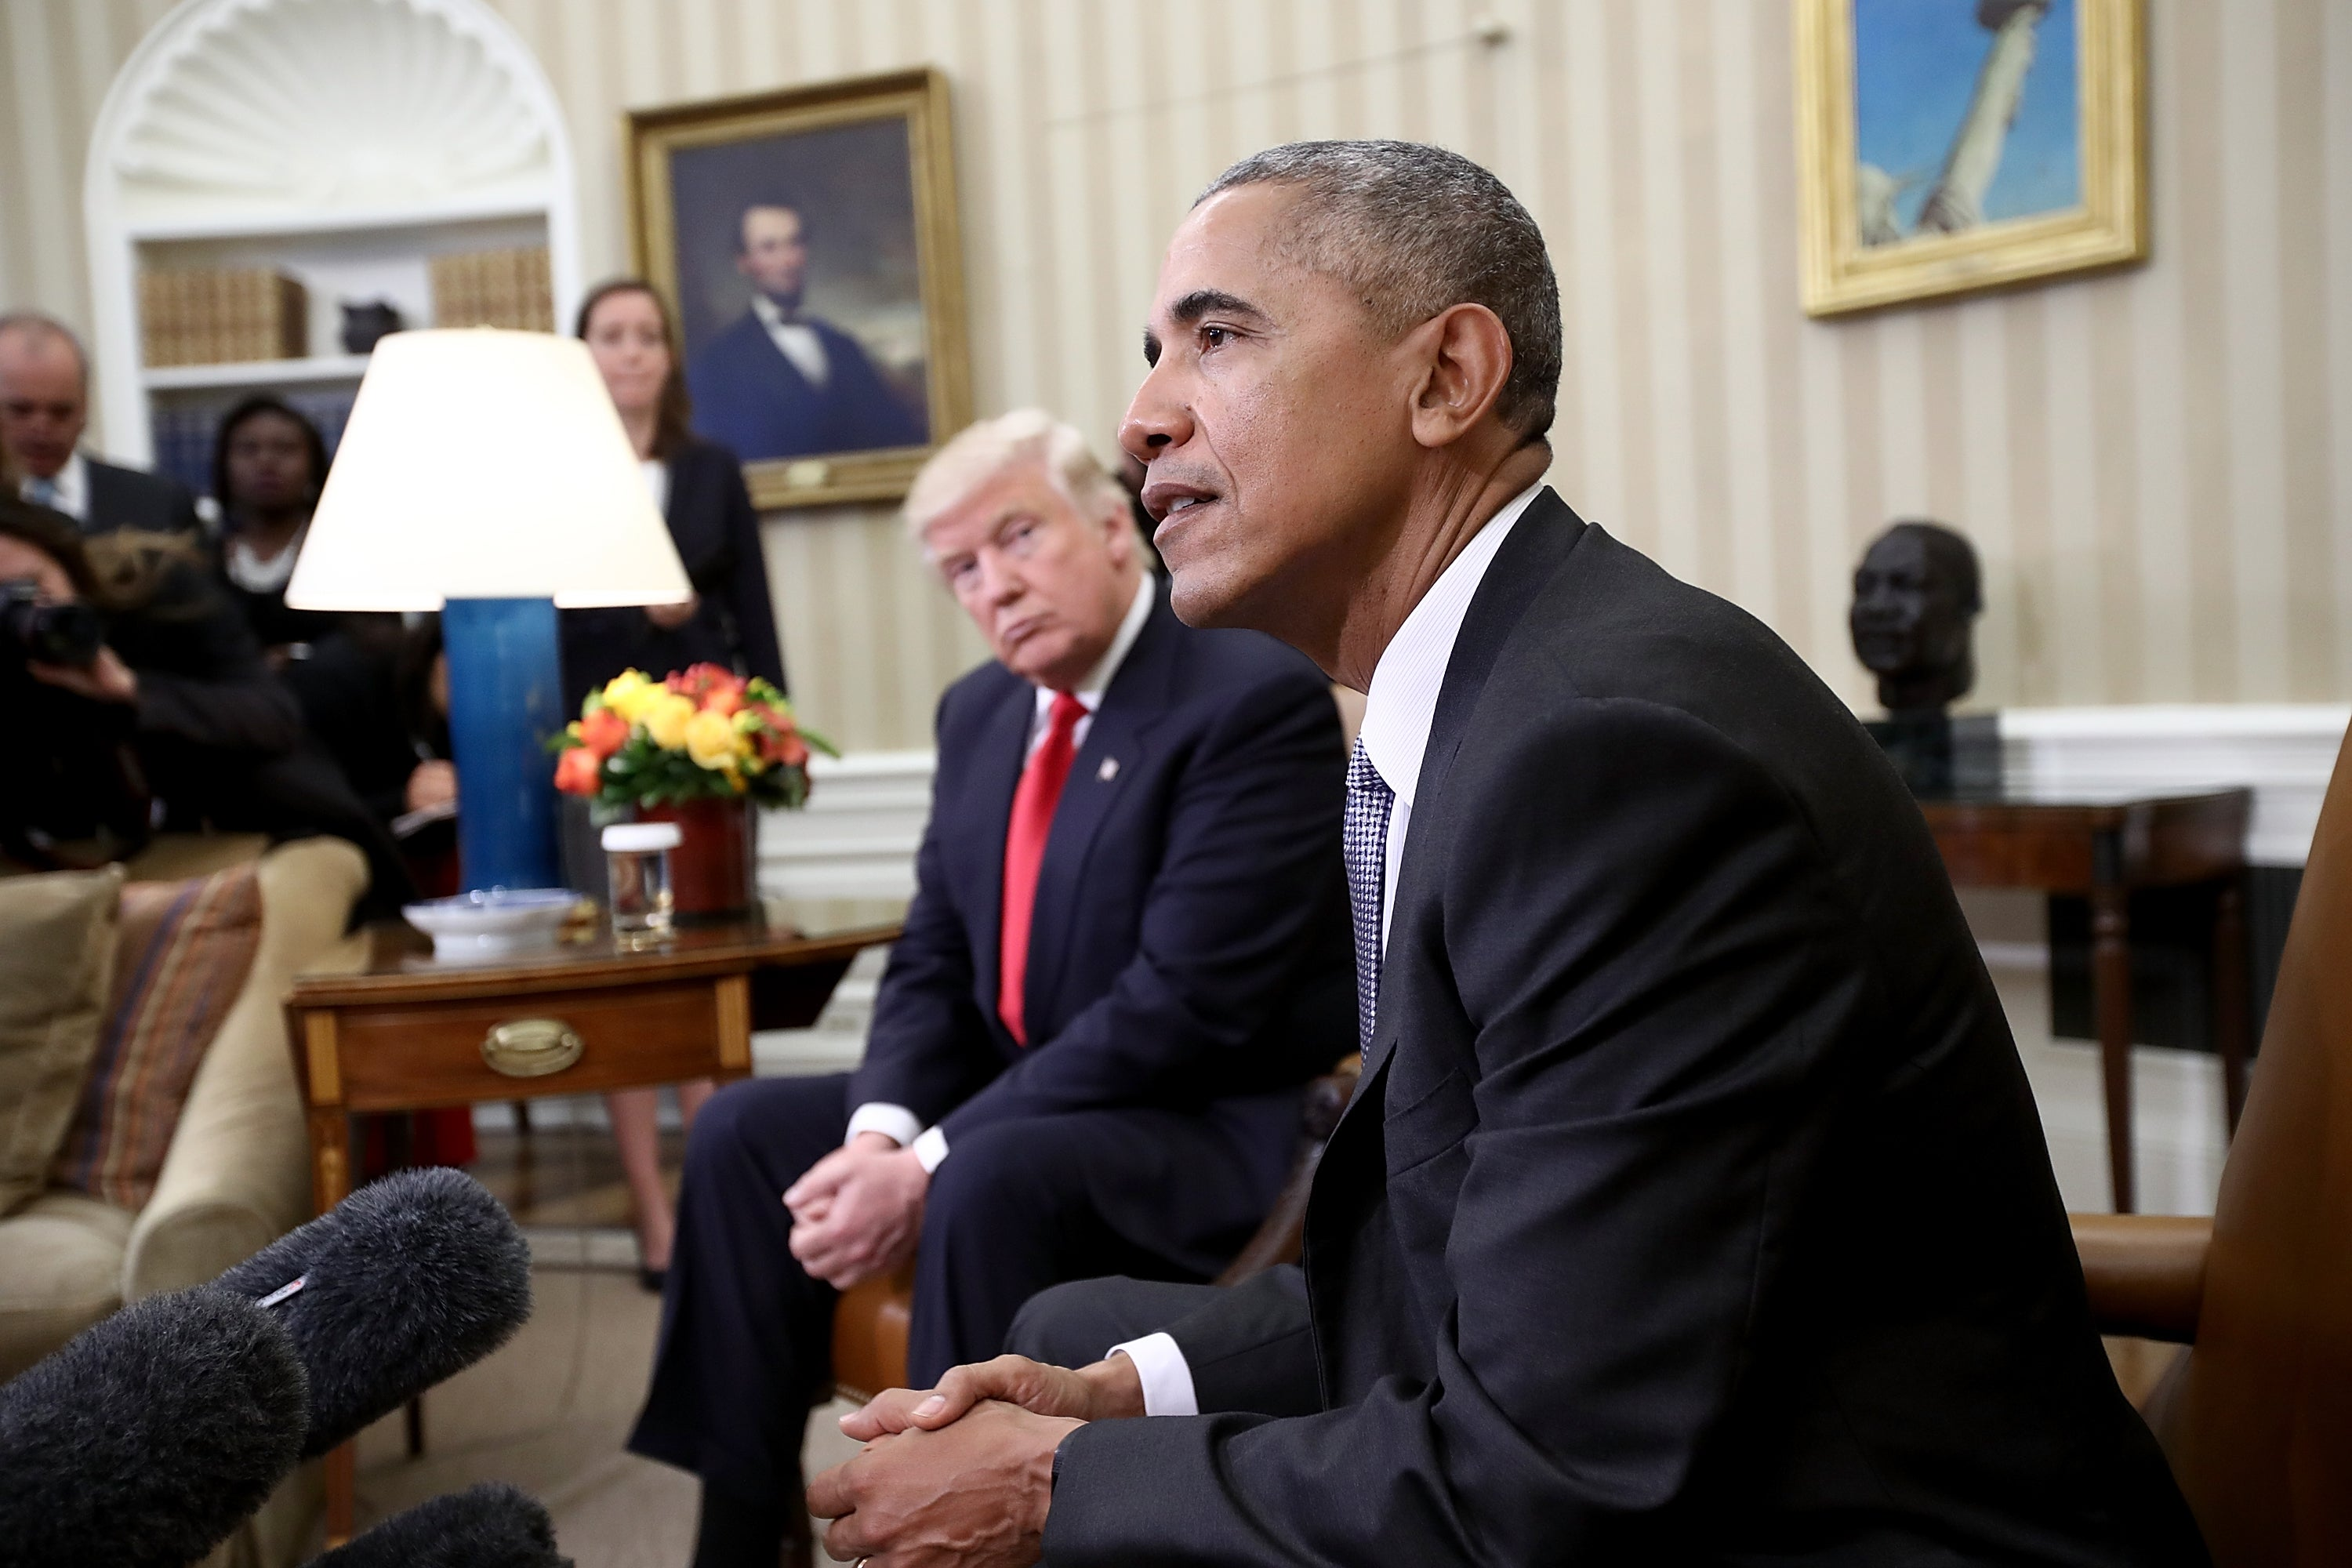 Obama Is 'Livid' About Trump's Unfounded Wire Tapping Allegations